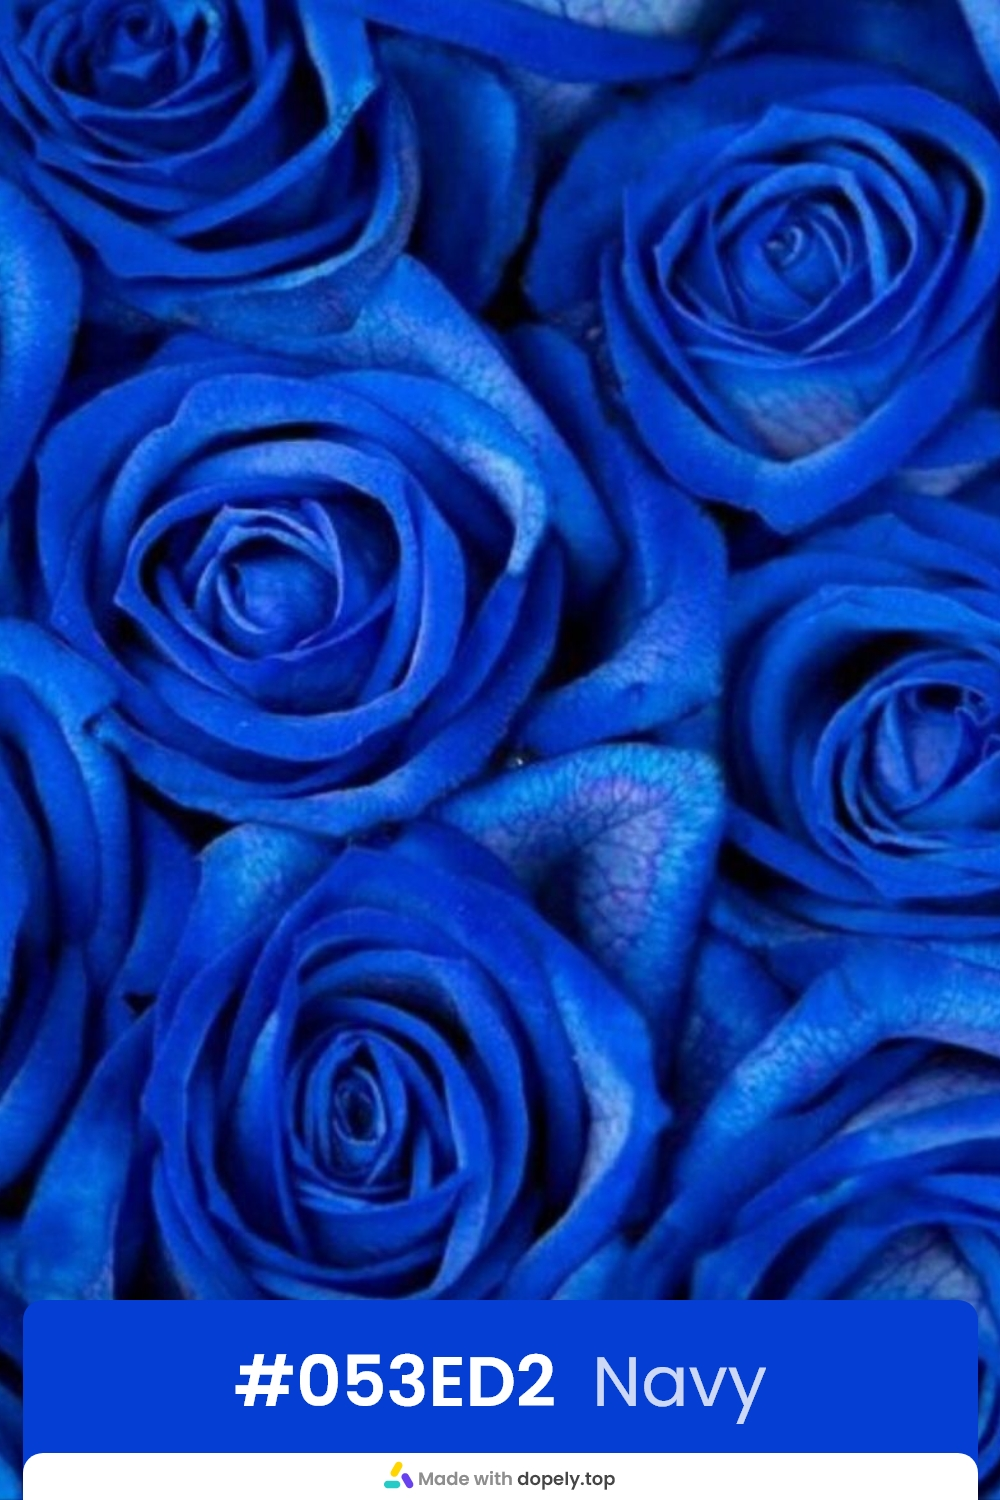 Navy color rose flower meaning with hex code